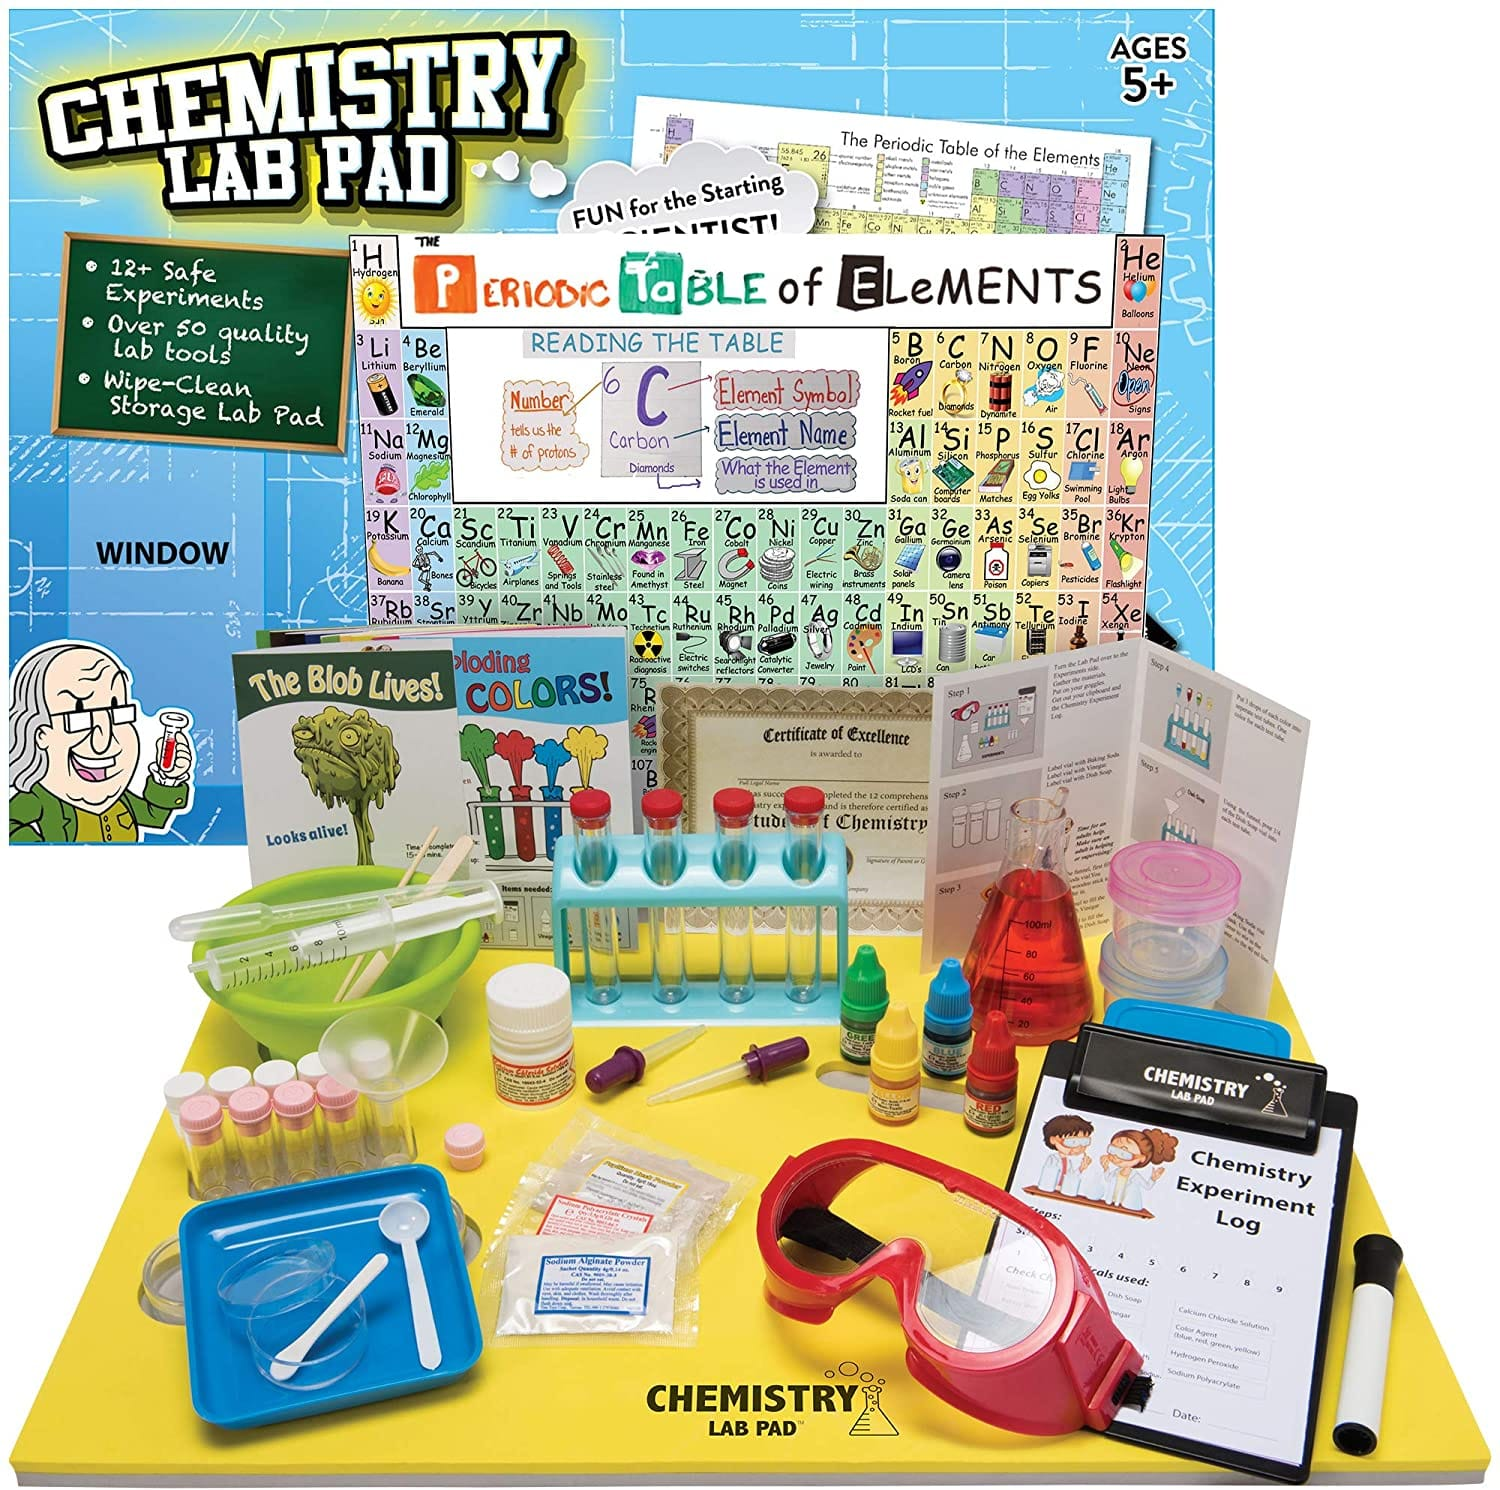 Ben Franklin Toys Chemistry Lab Pad Science Kit Ages 5+ $39.99